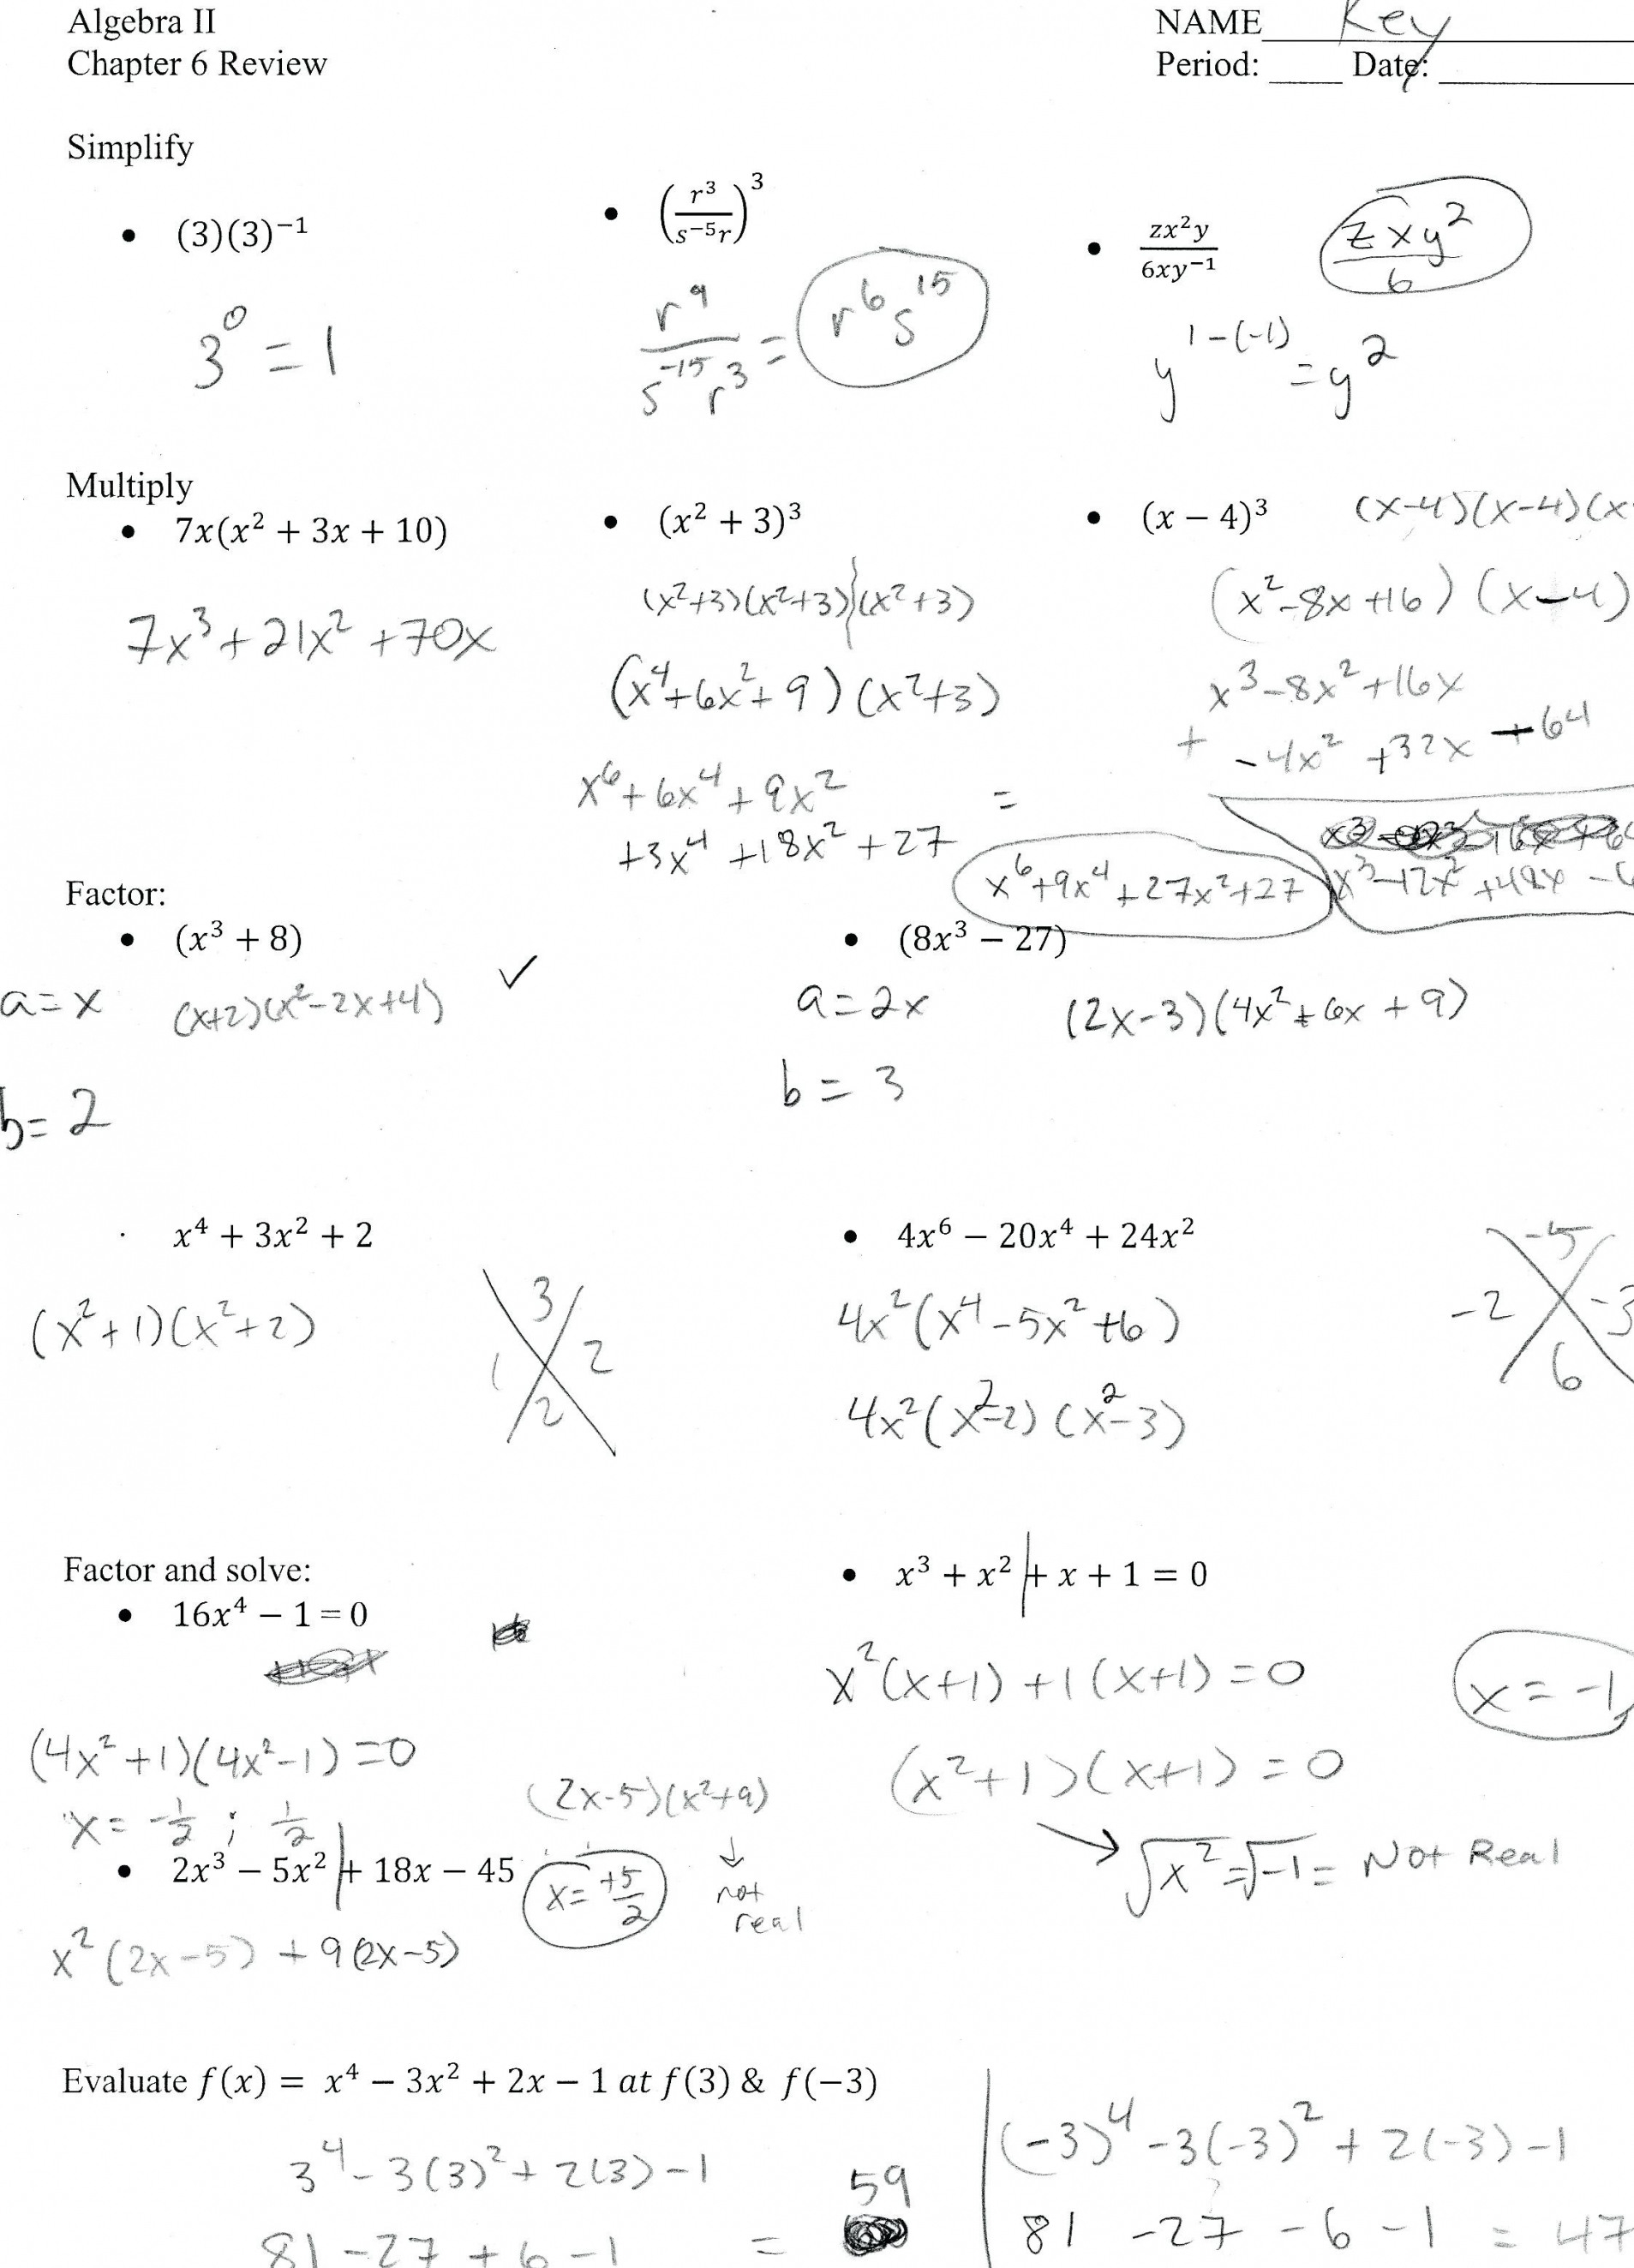 Speciation Of Species Speciation Worksheet Answers As